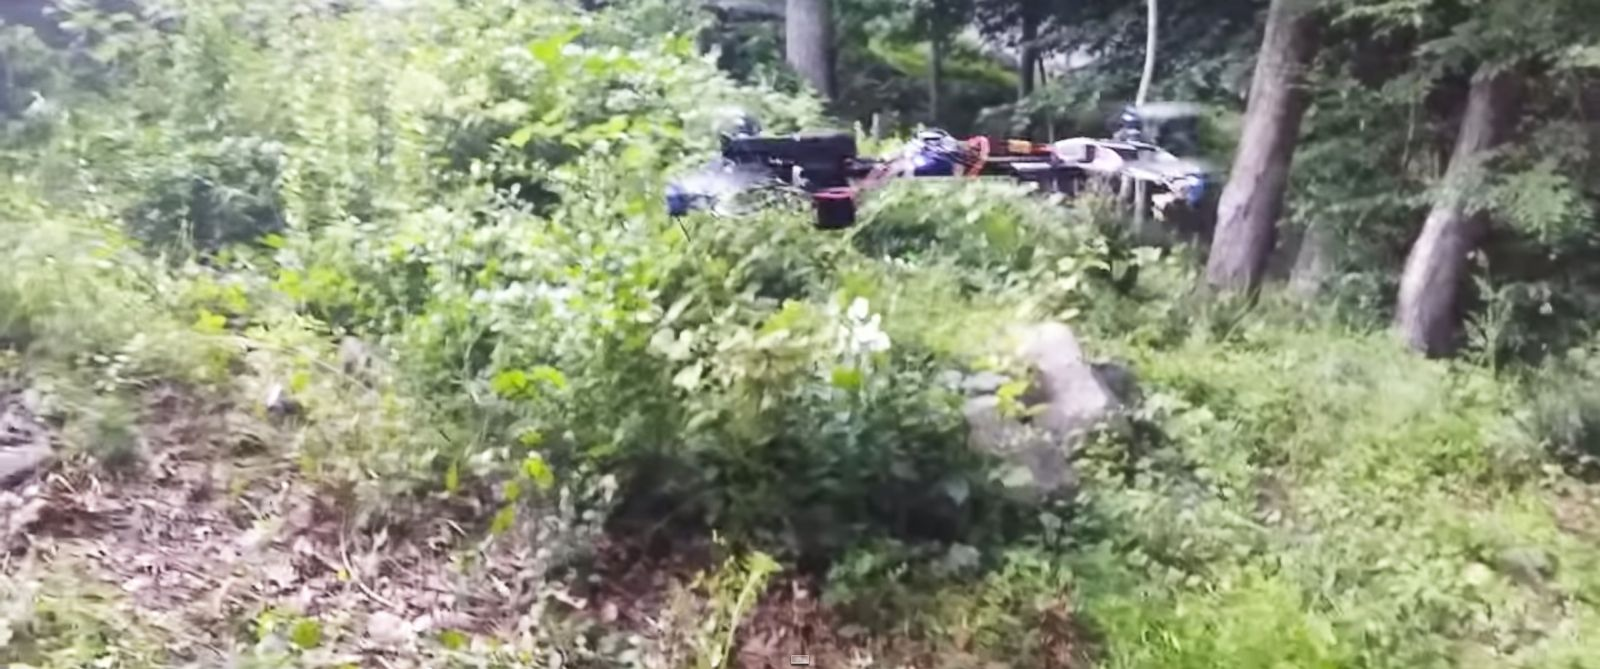 "PHOTO: Video posted on YouTube July 10, 2015, and titled ""Flying Gun"" shows a drone with a semi-automatic handgun mounted and firing remotely."